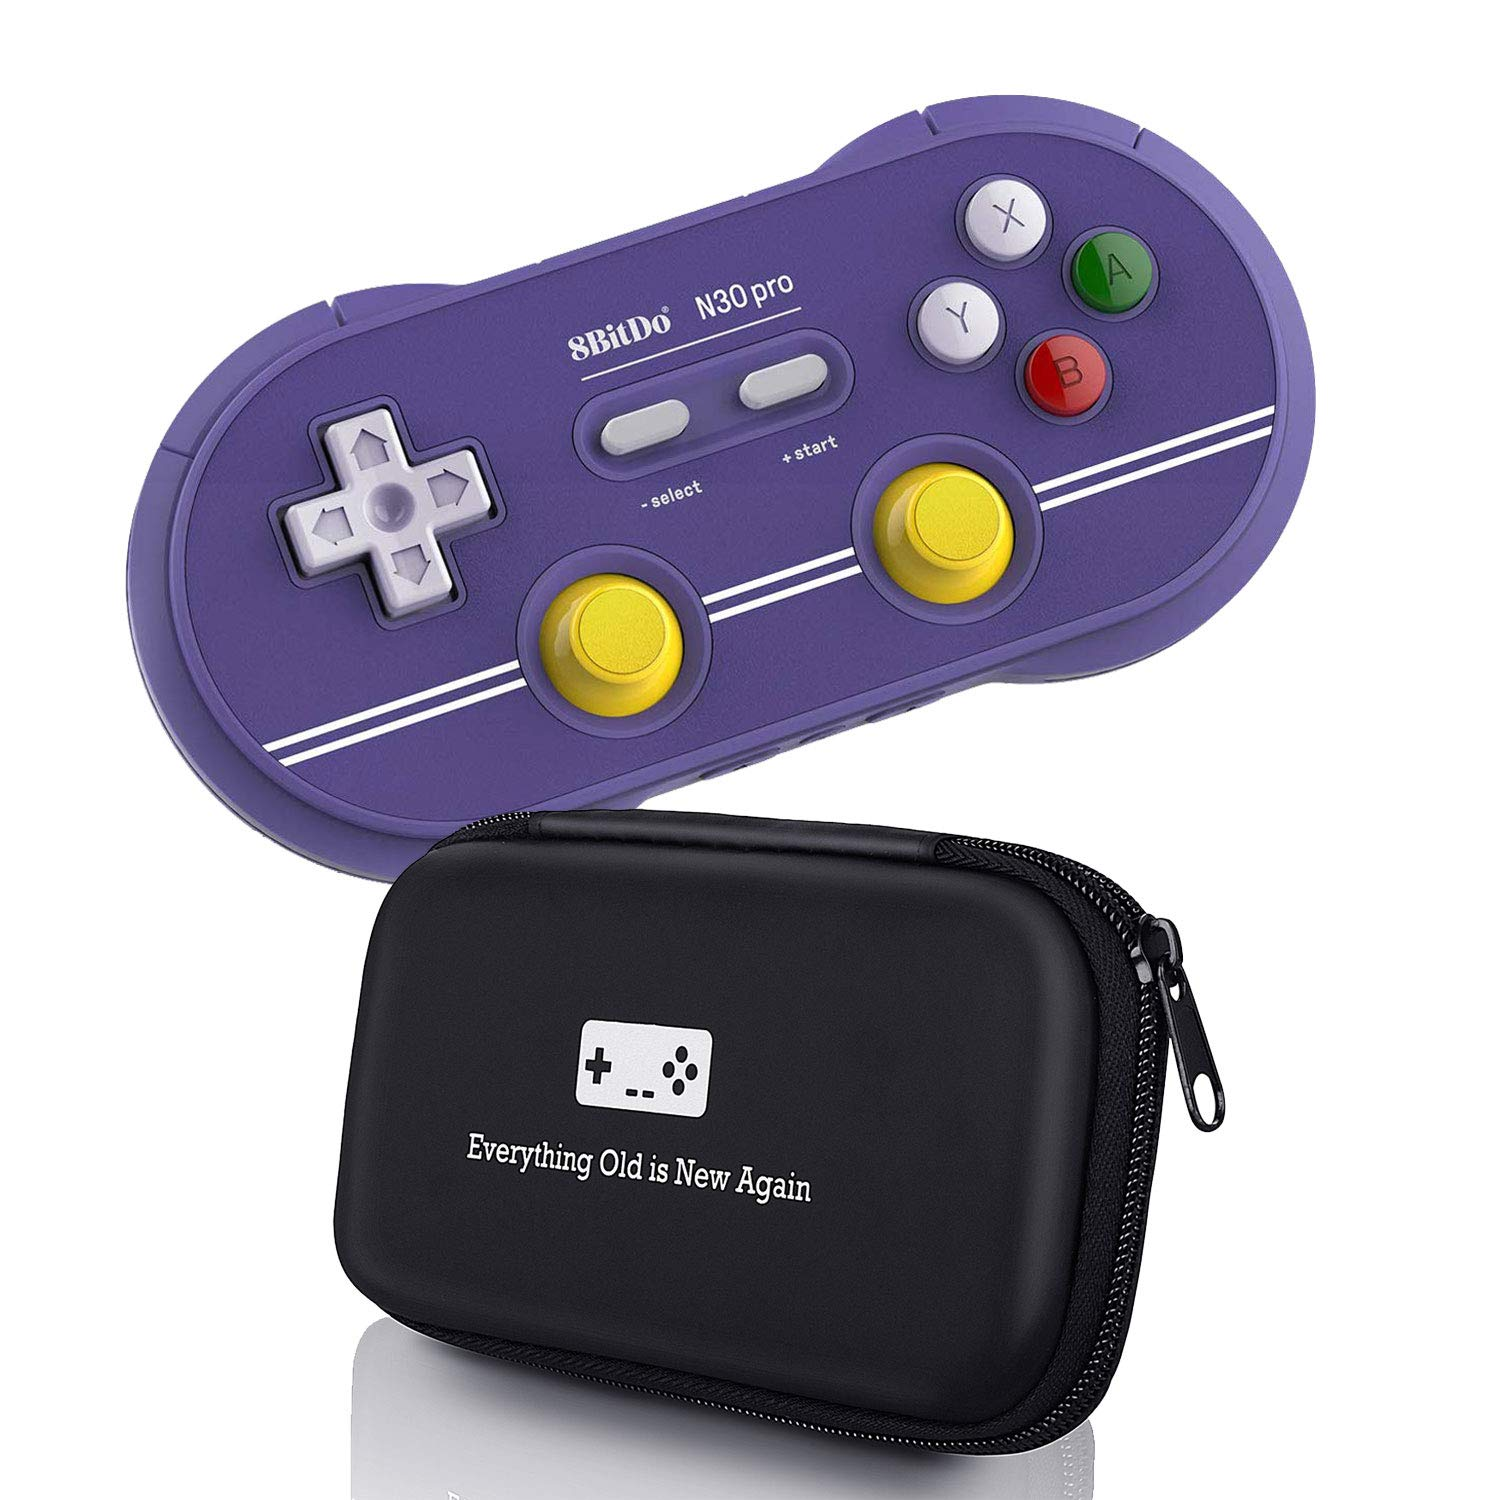 Geek Theory 8Bitdo N30 Pro 2 Controller Bundle (C Edition) - Includes BONUS Carrying Case - Updated 2018 Version - Android/Mac/PC/Switch/NES and SNES Classic